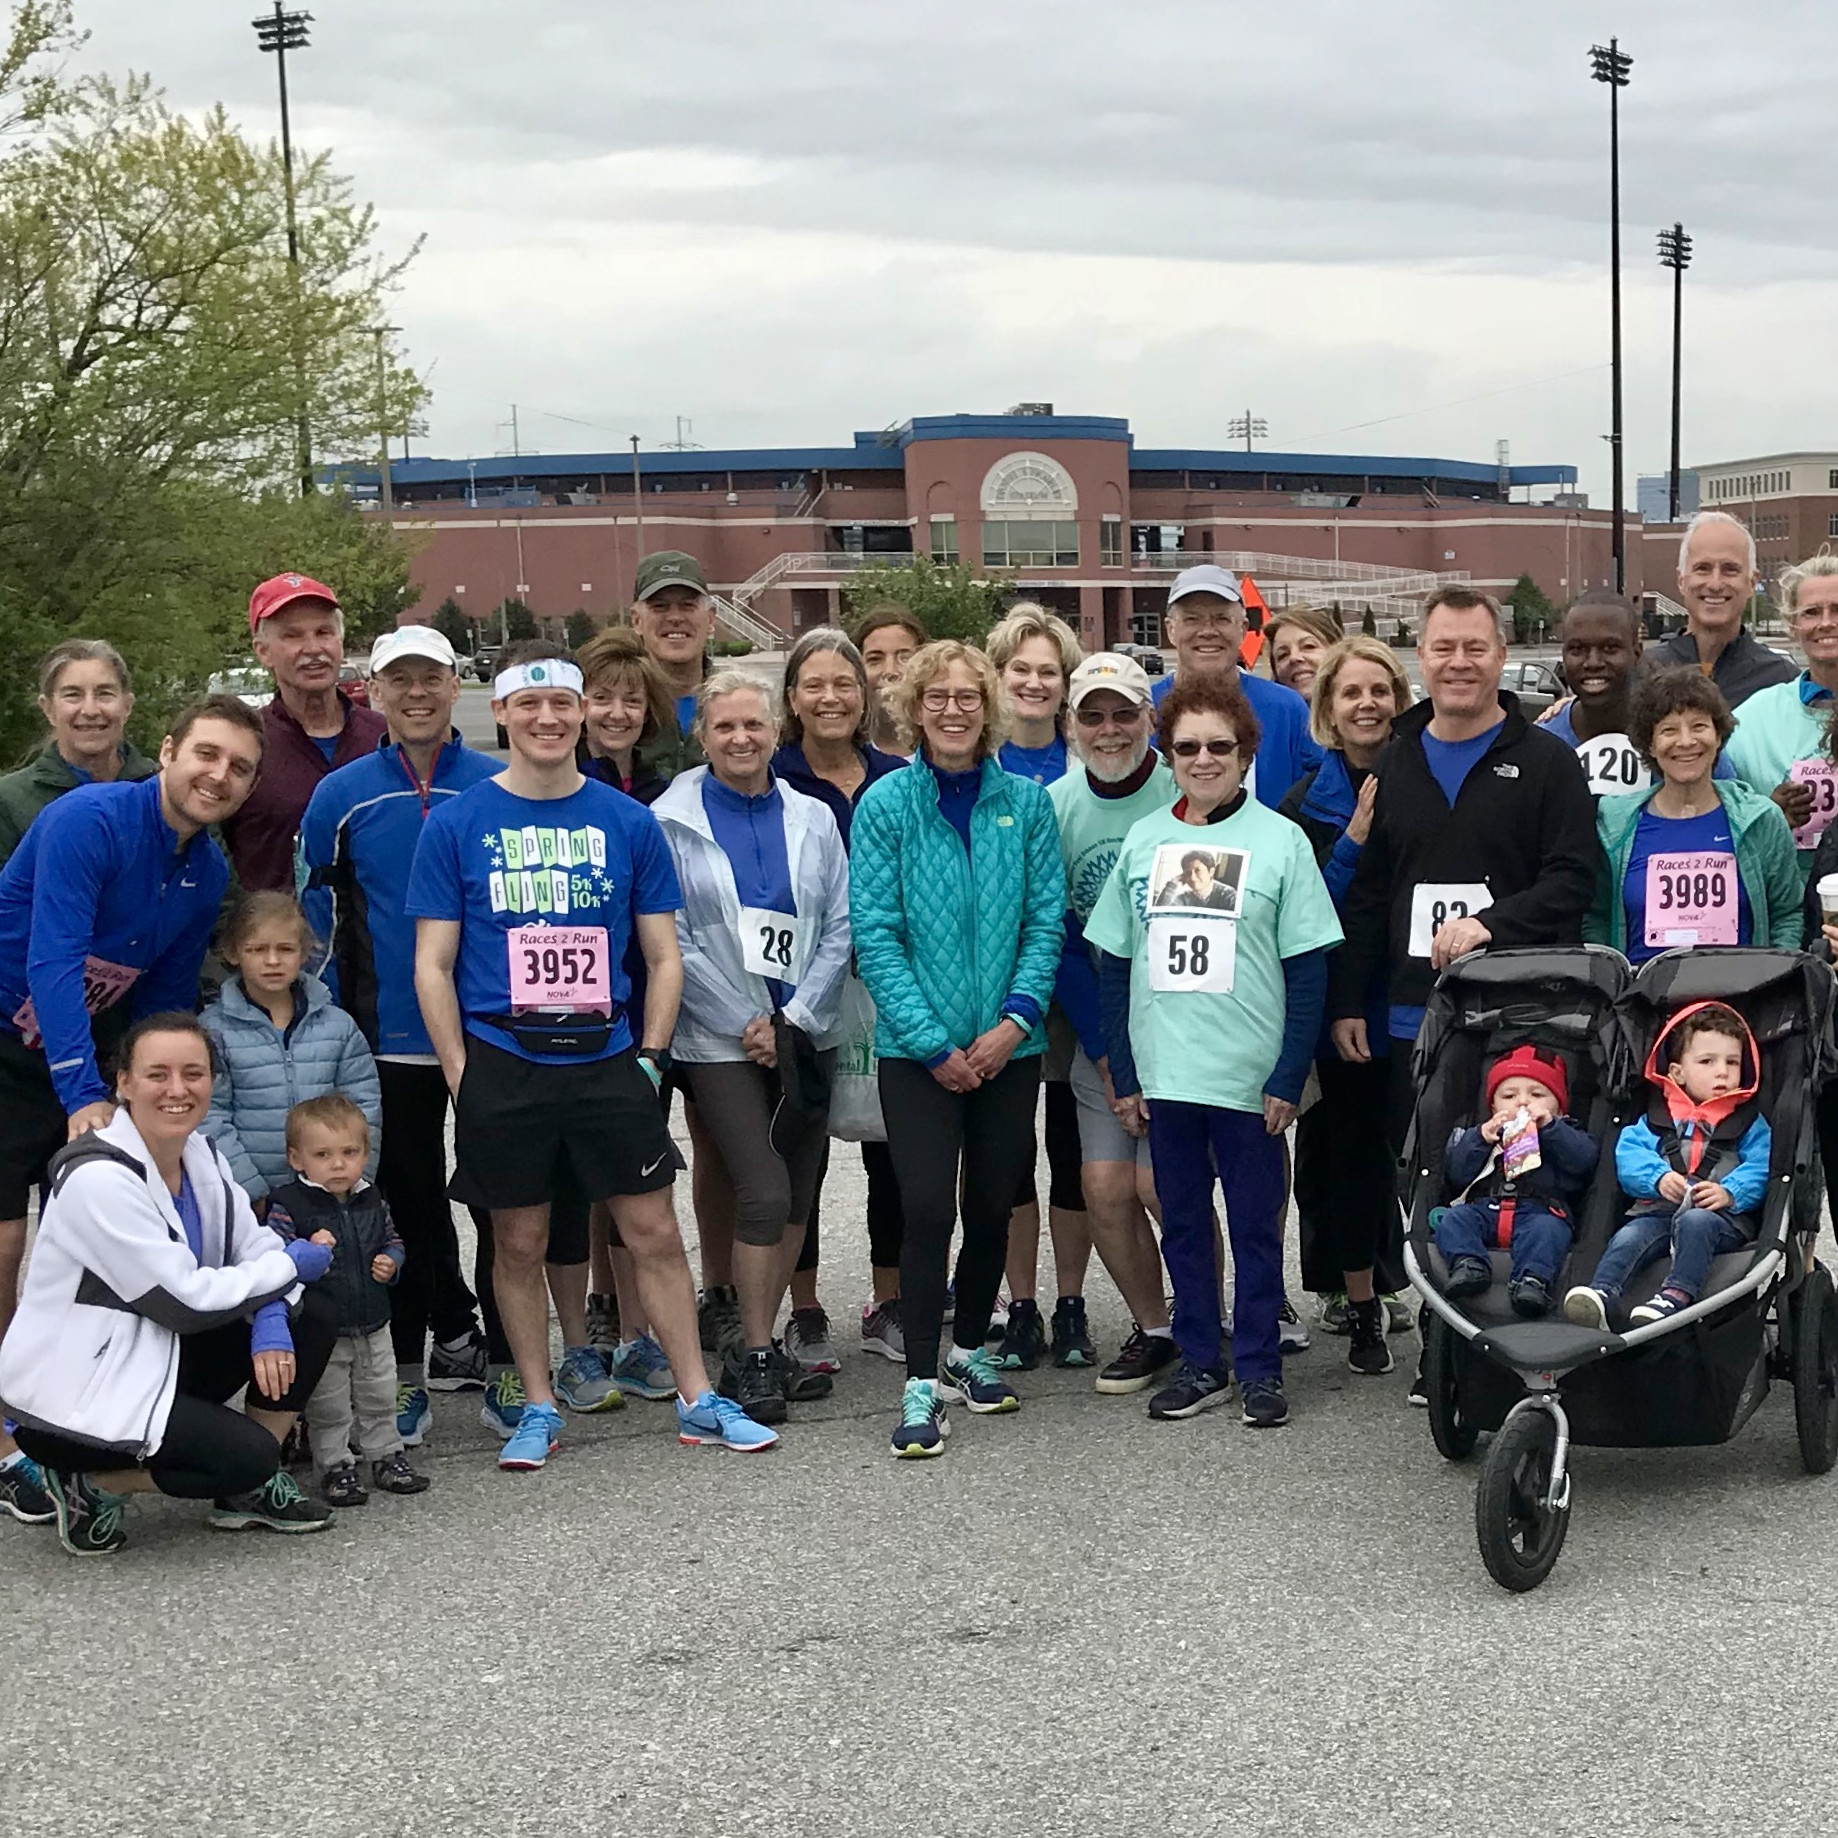 Participants 10th Docf Teal Ribbon 5k Run Walk To Fight Ovarian Cancer Race Roster Registration Marketing Fundraising